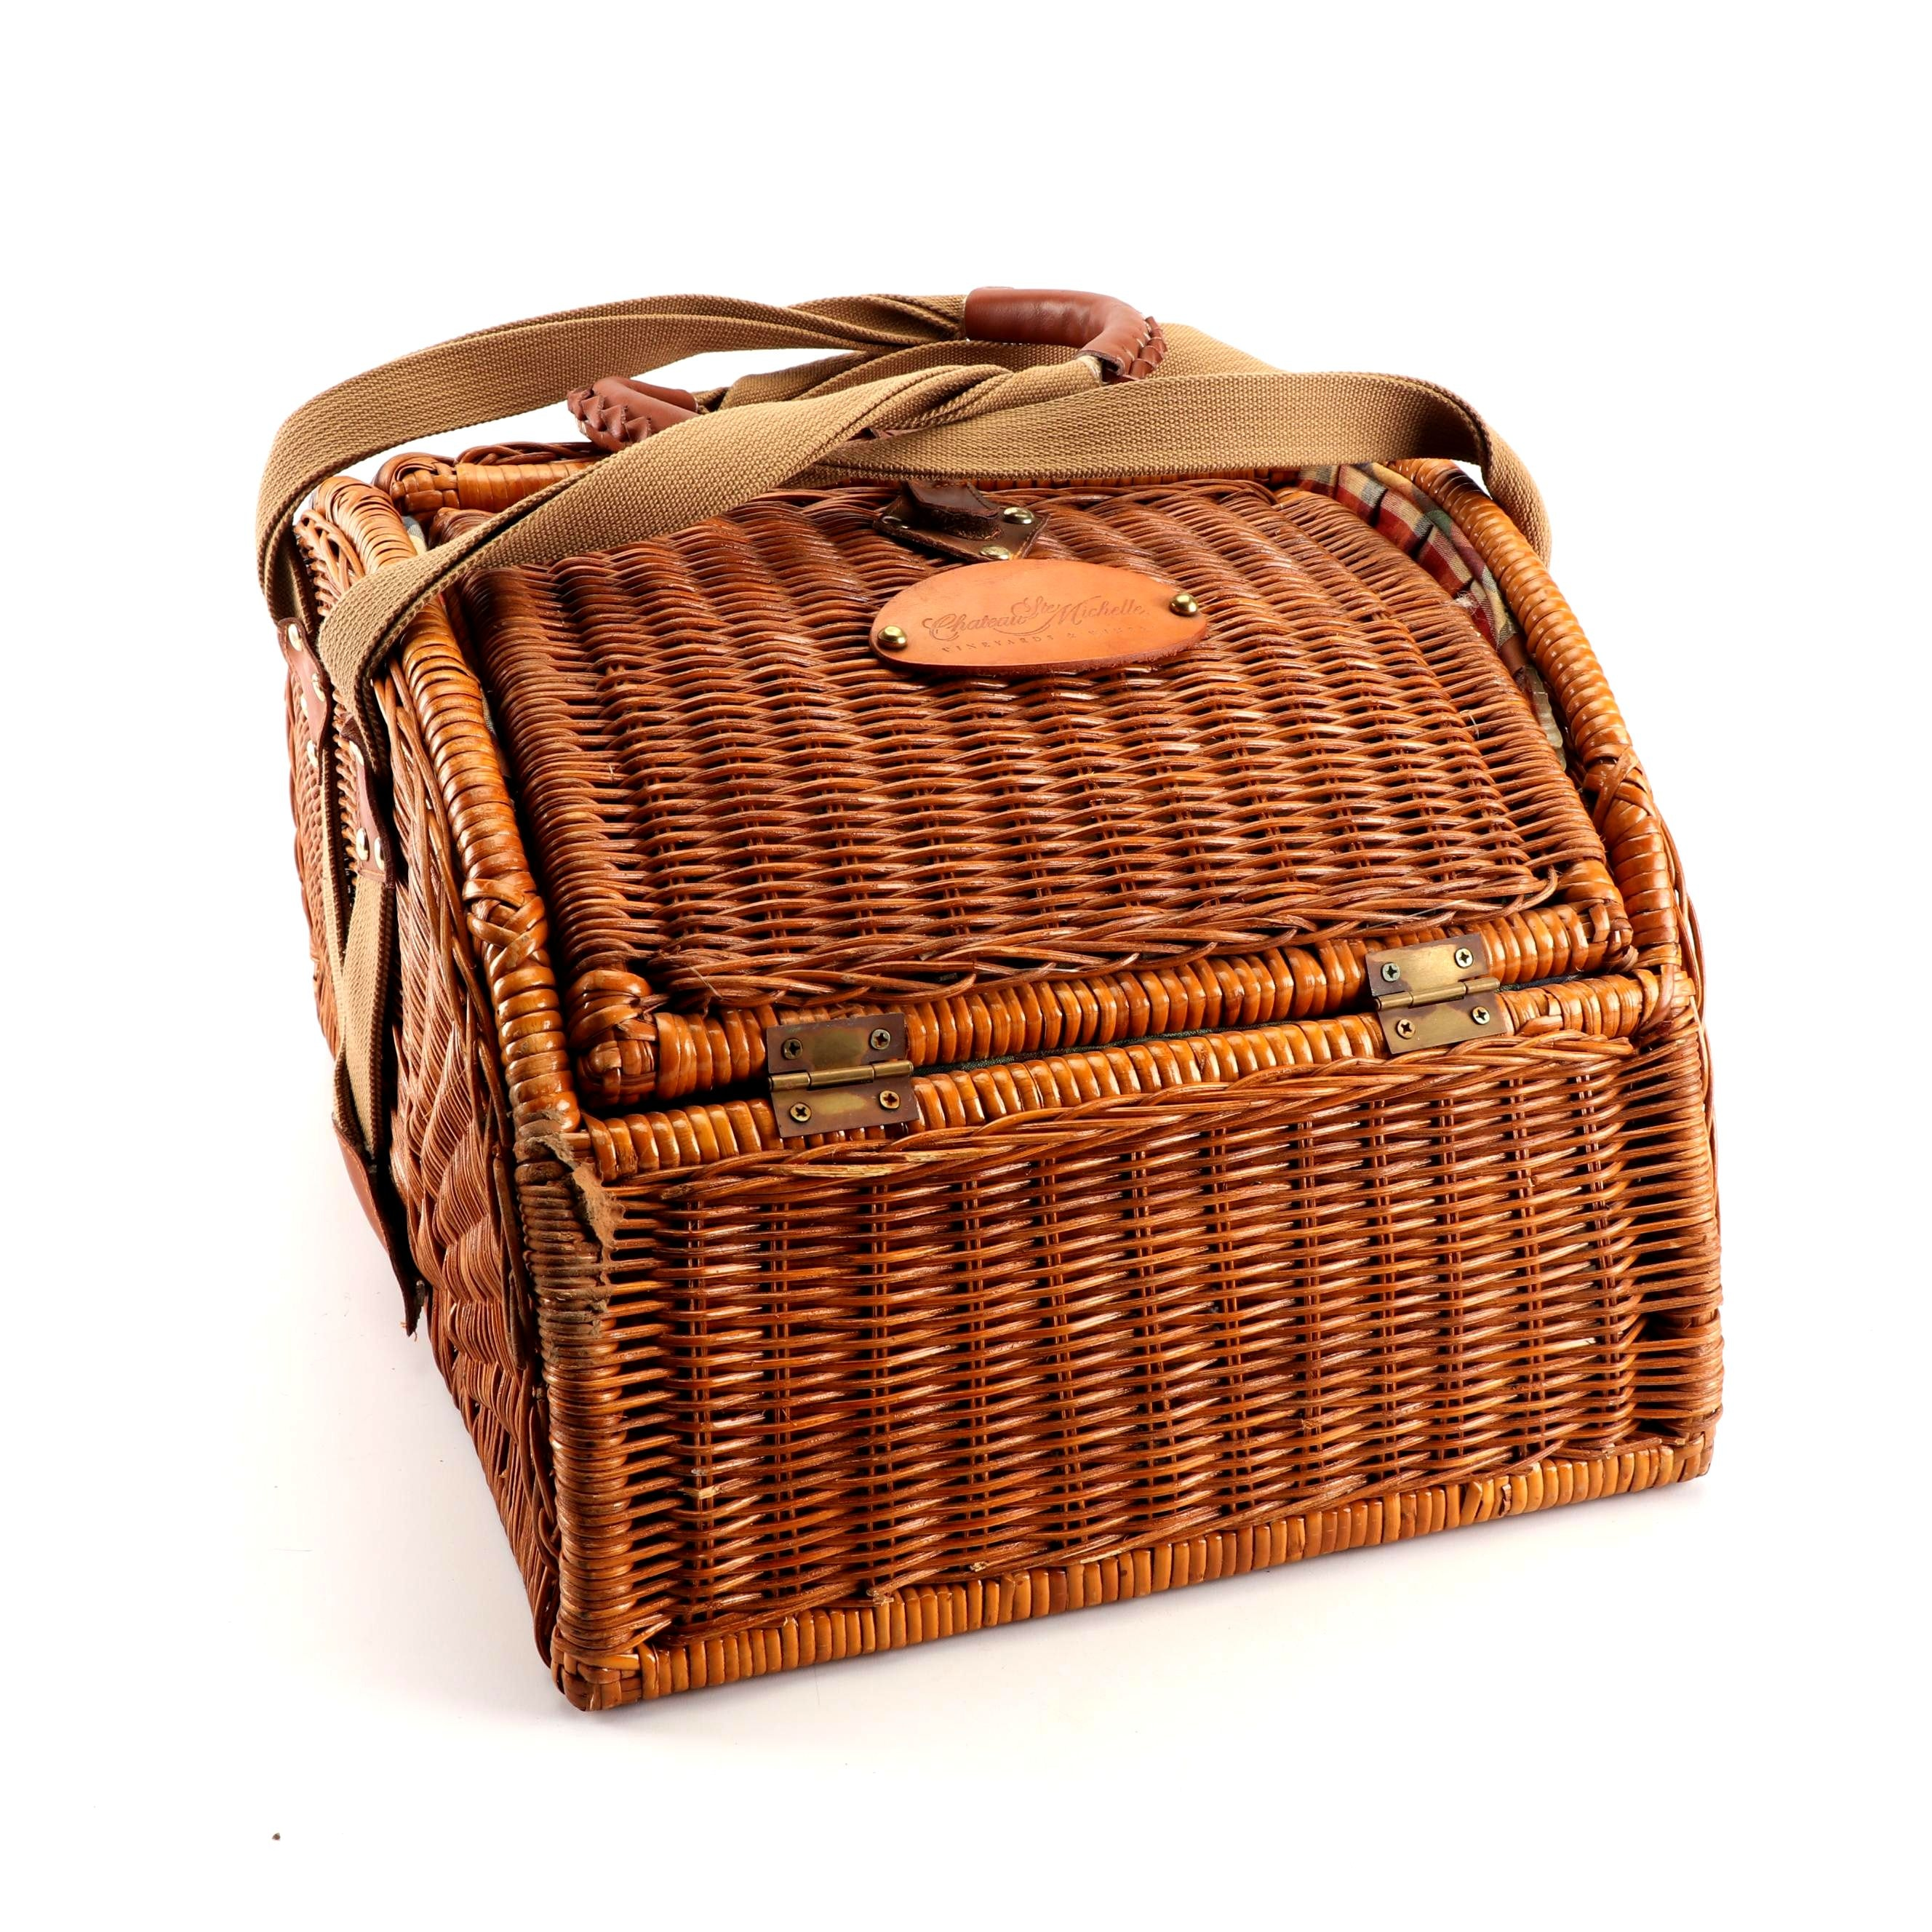 Chateau Ste Michelle Picnic Basket With Accessories